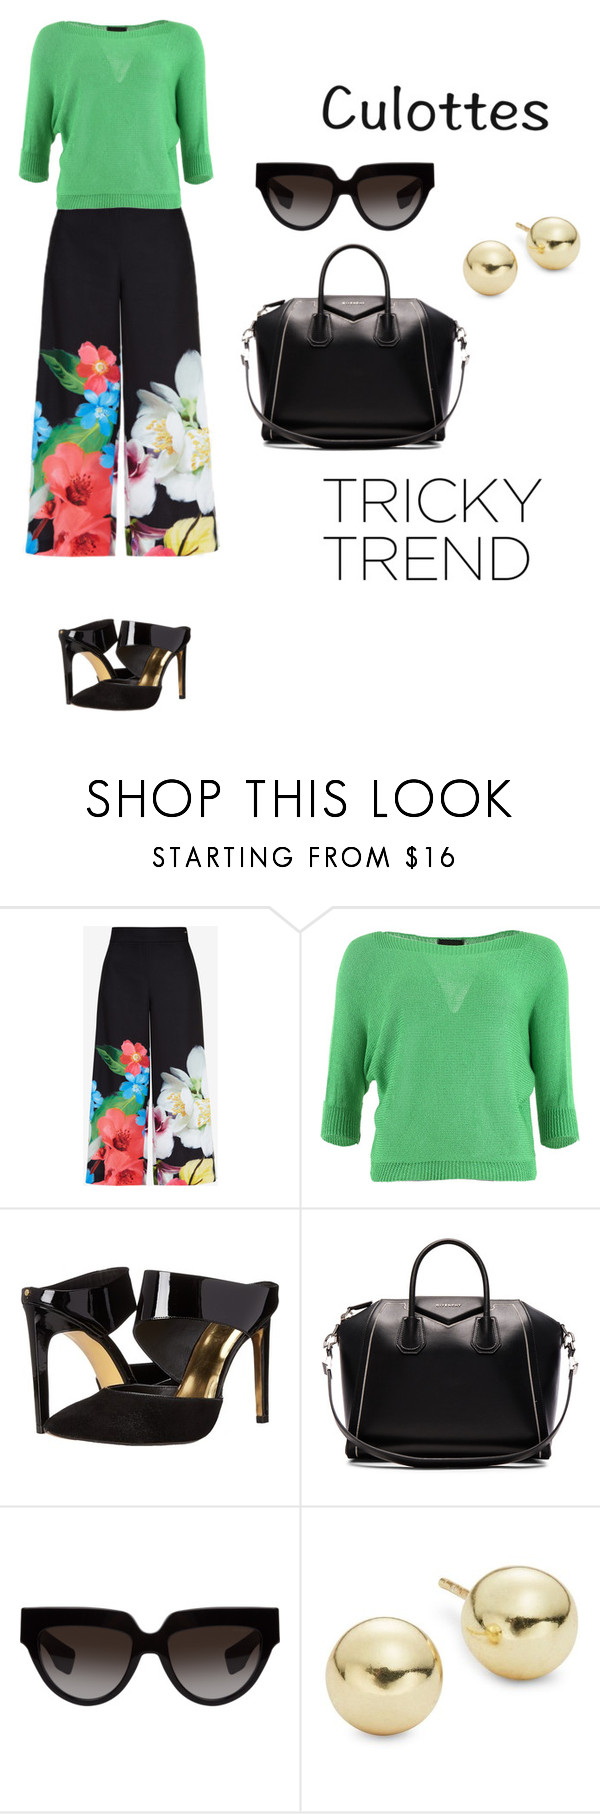 """""""Untitled #794"""" by alison-tann ❤ liked on Polyvore featuring Ted Baker, FRACOMINA, Givenchy, Prada, Lord & Taylor, TrickyTrend and culottes"""